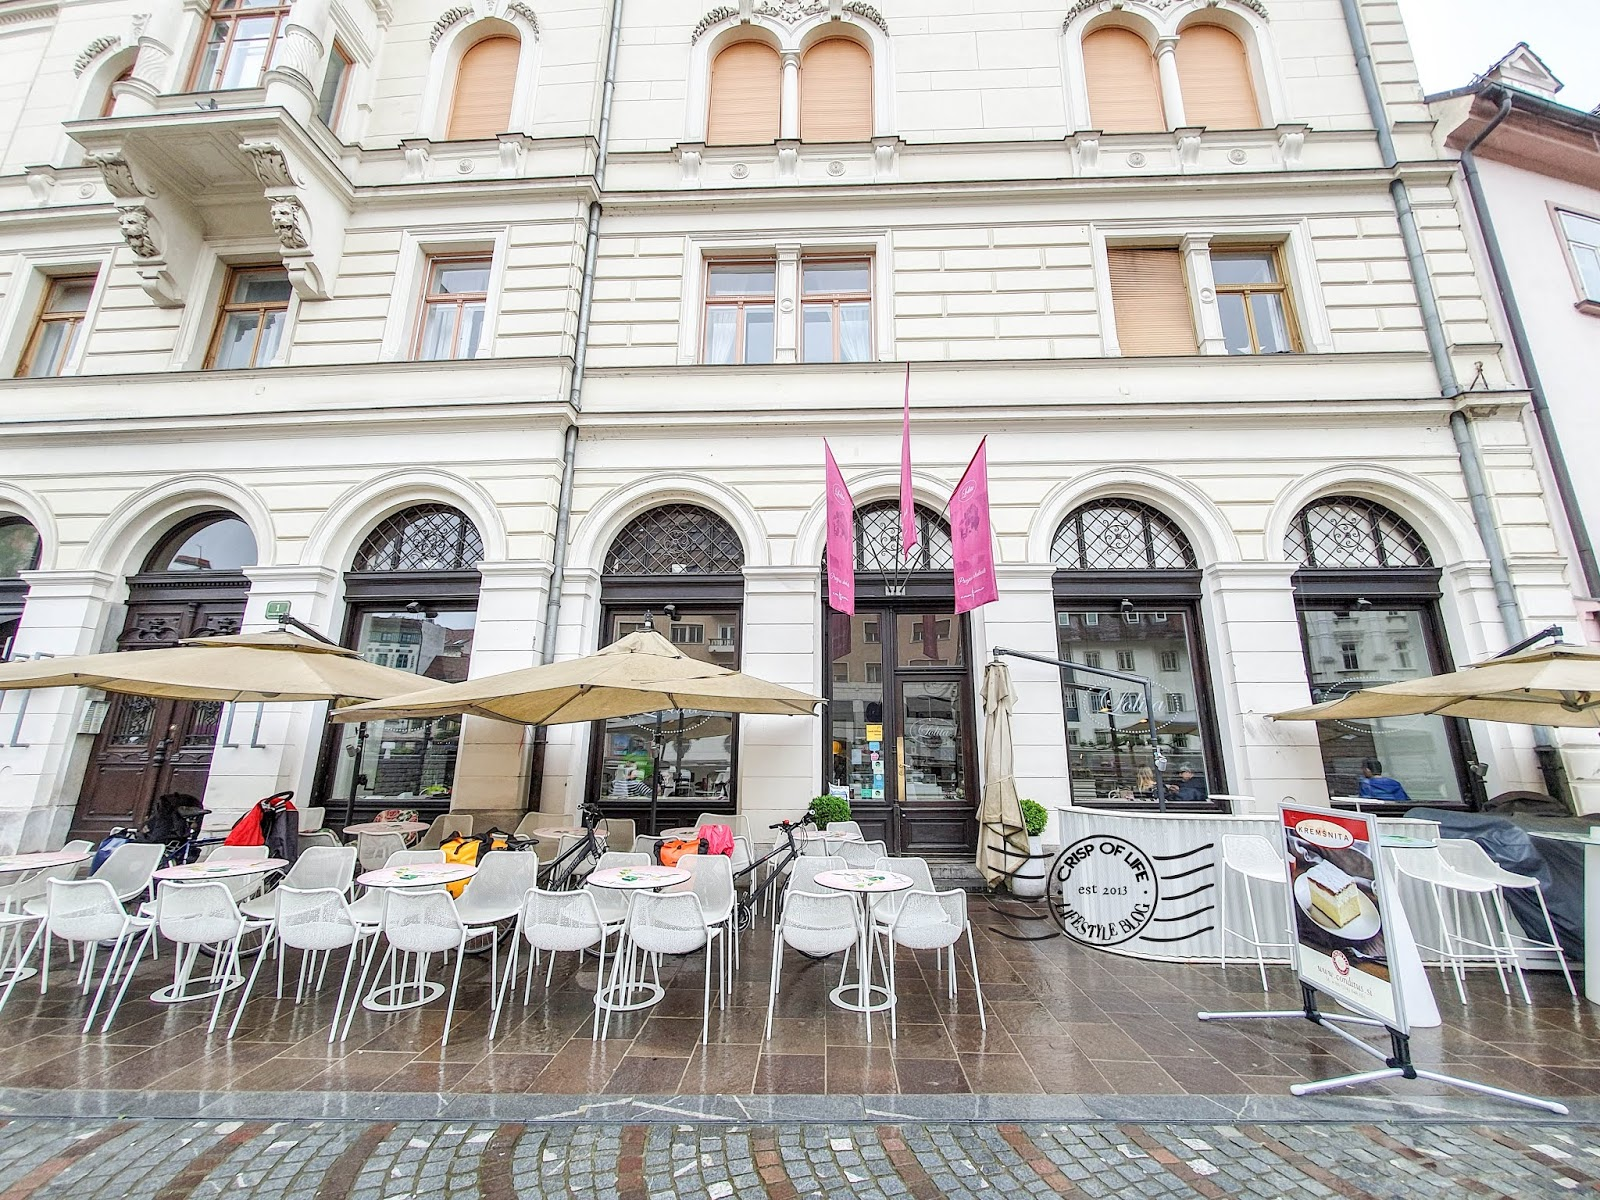 What to Eat in Ljubljana, Slovenia?